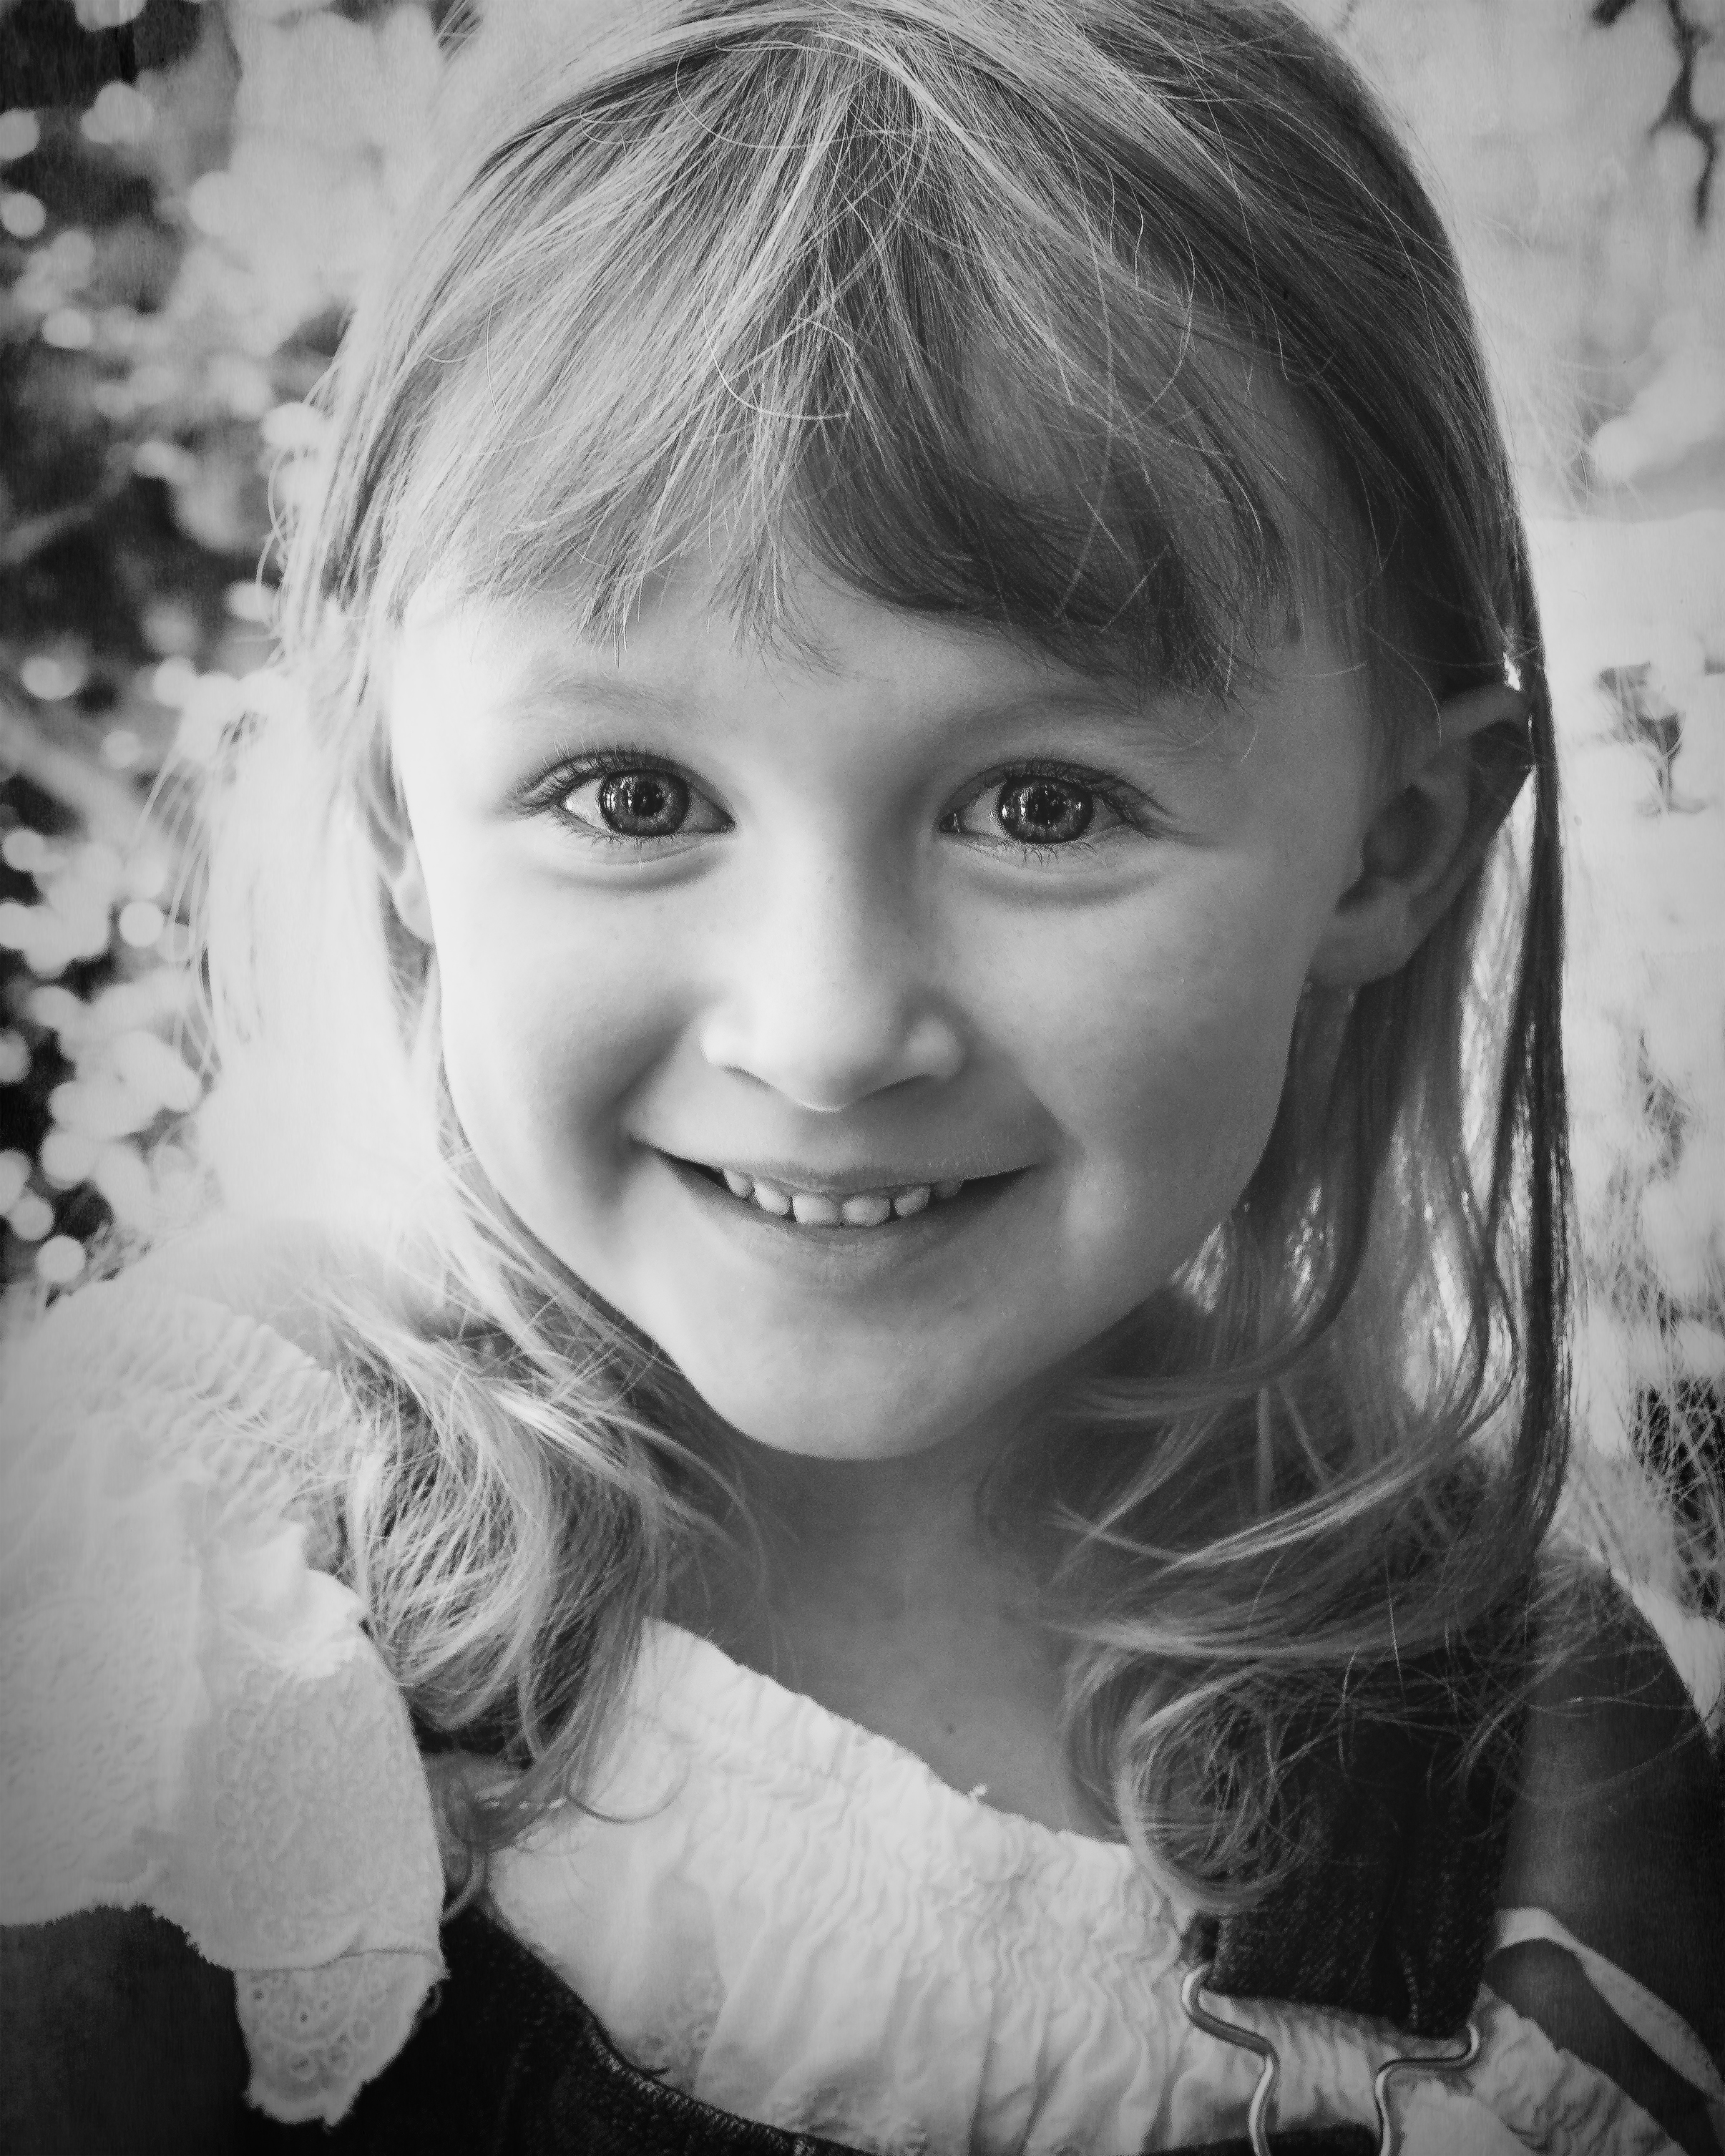 Do you see the sparkles? Lovely Portrait of this darling happy little one. Portrait by Nature's Reward Photography- a southern California photographer